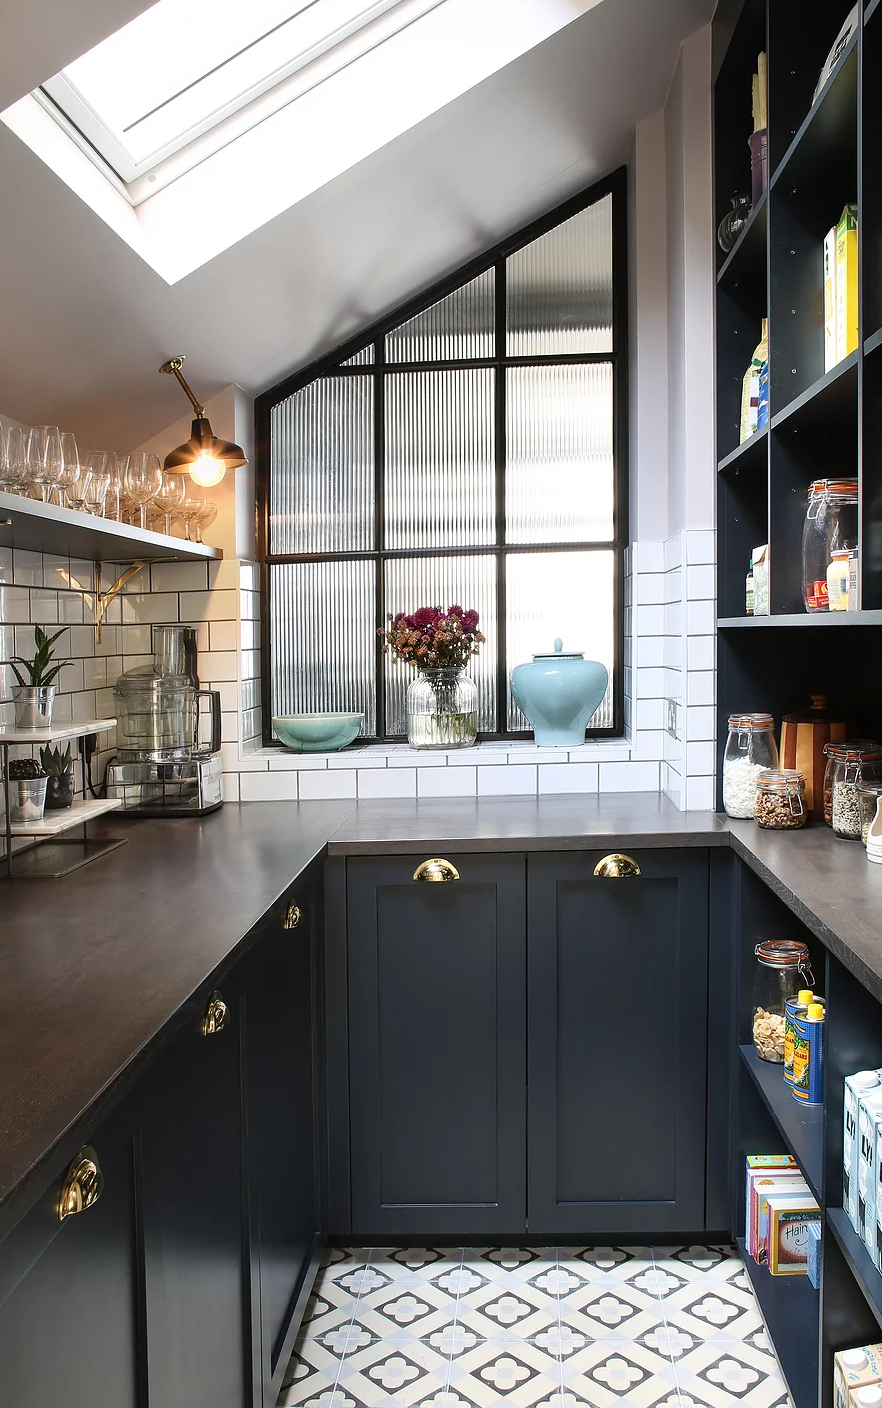 Amazing Kitchen Design With Touches Of Gold 5